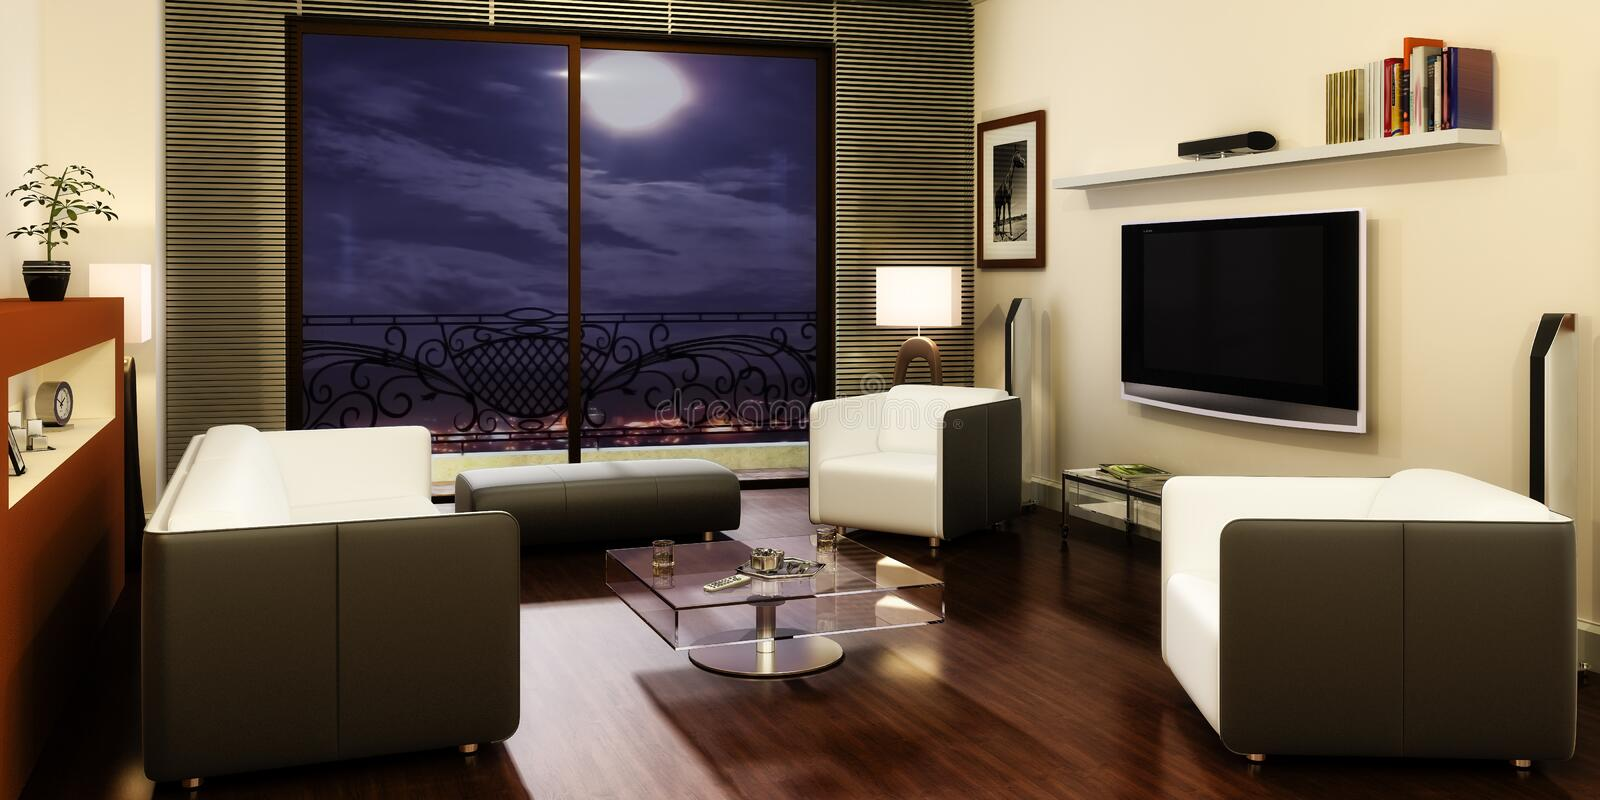 Apartment with a TV. 3d visualization royalty free illustration